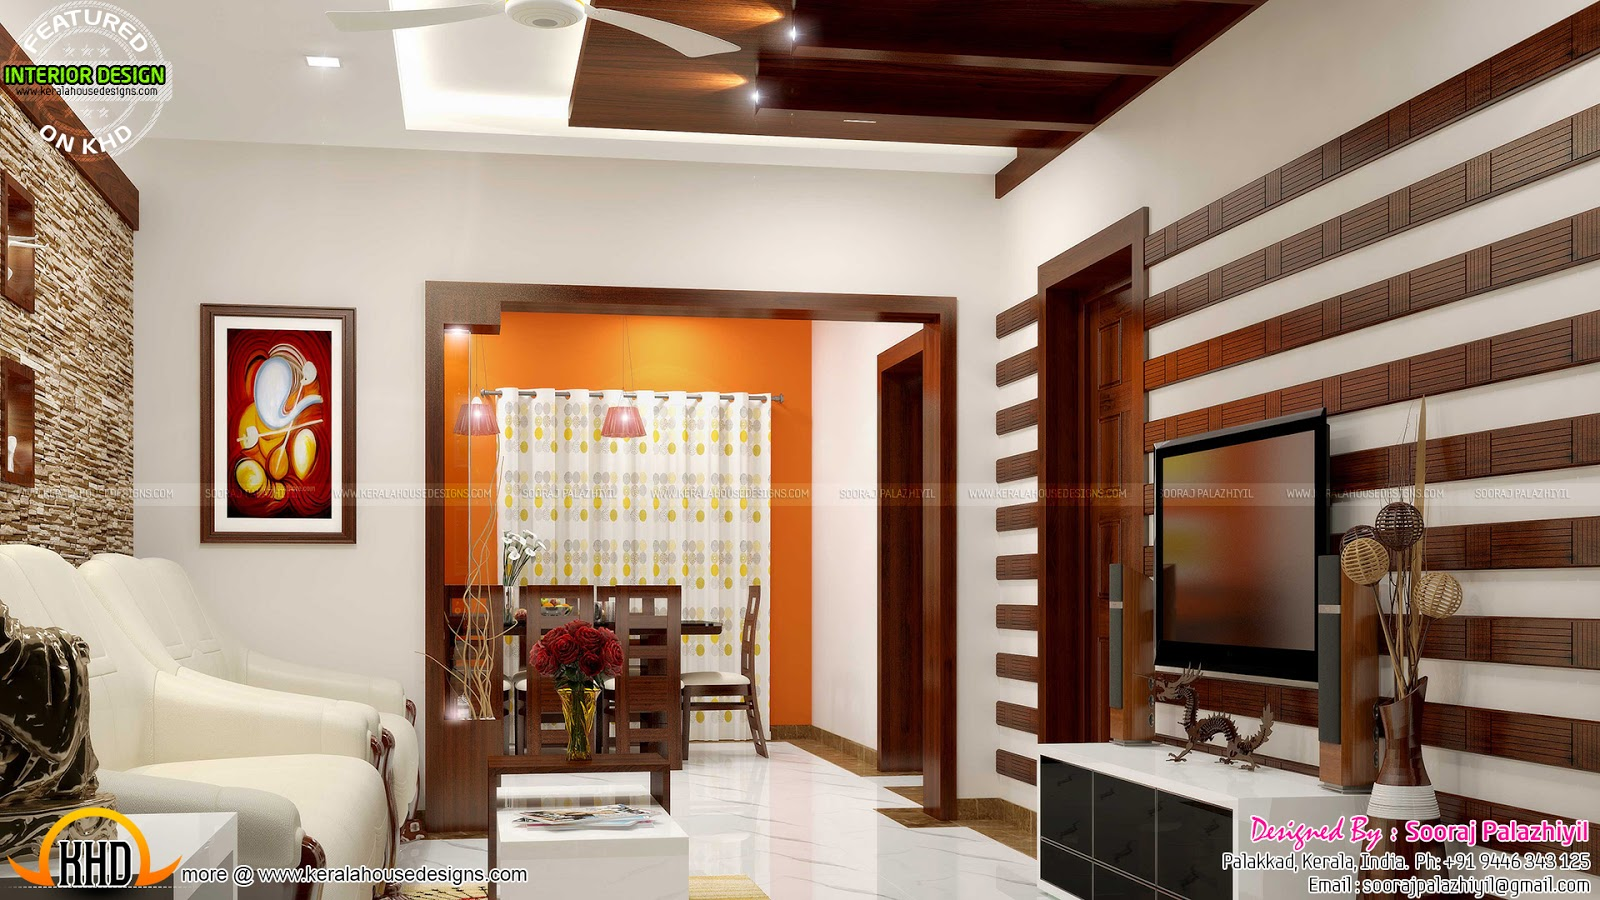 Simple apartment interior in kerala kerala home design for Interior design ideas for small homes in kerala